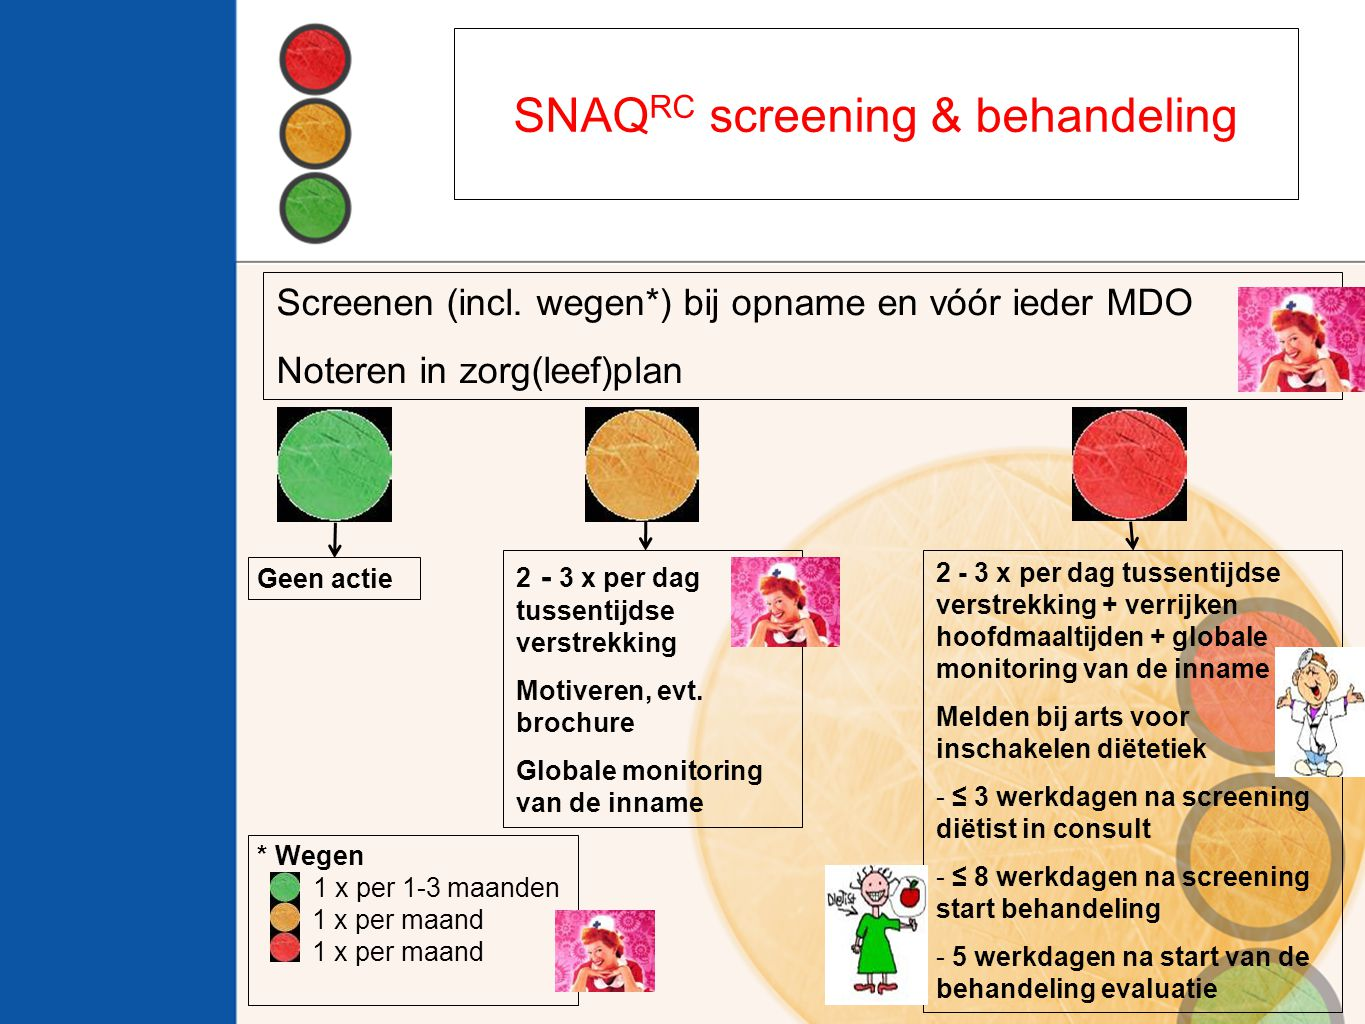 SNAQRC screening & behandeling